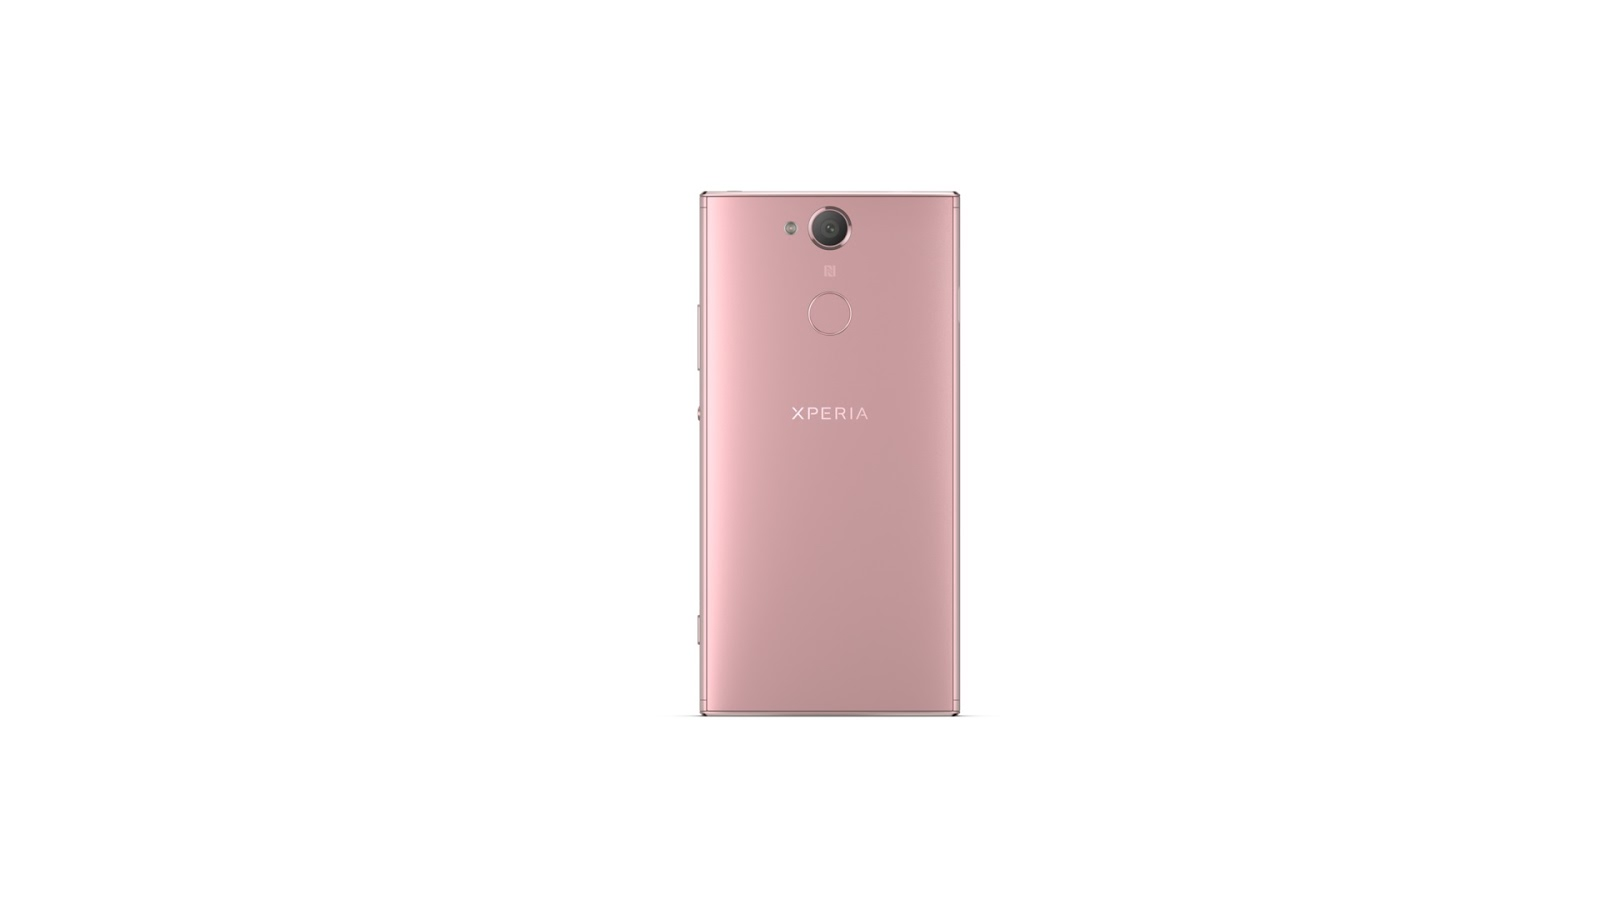 CES 2018: Sony Launched Xperia L2, XA2 and XA2 Ultra | Mister Techs